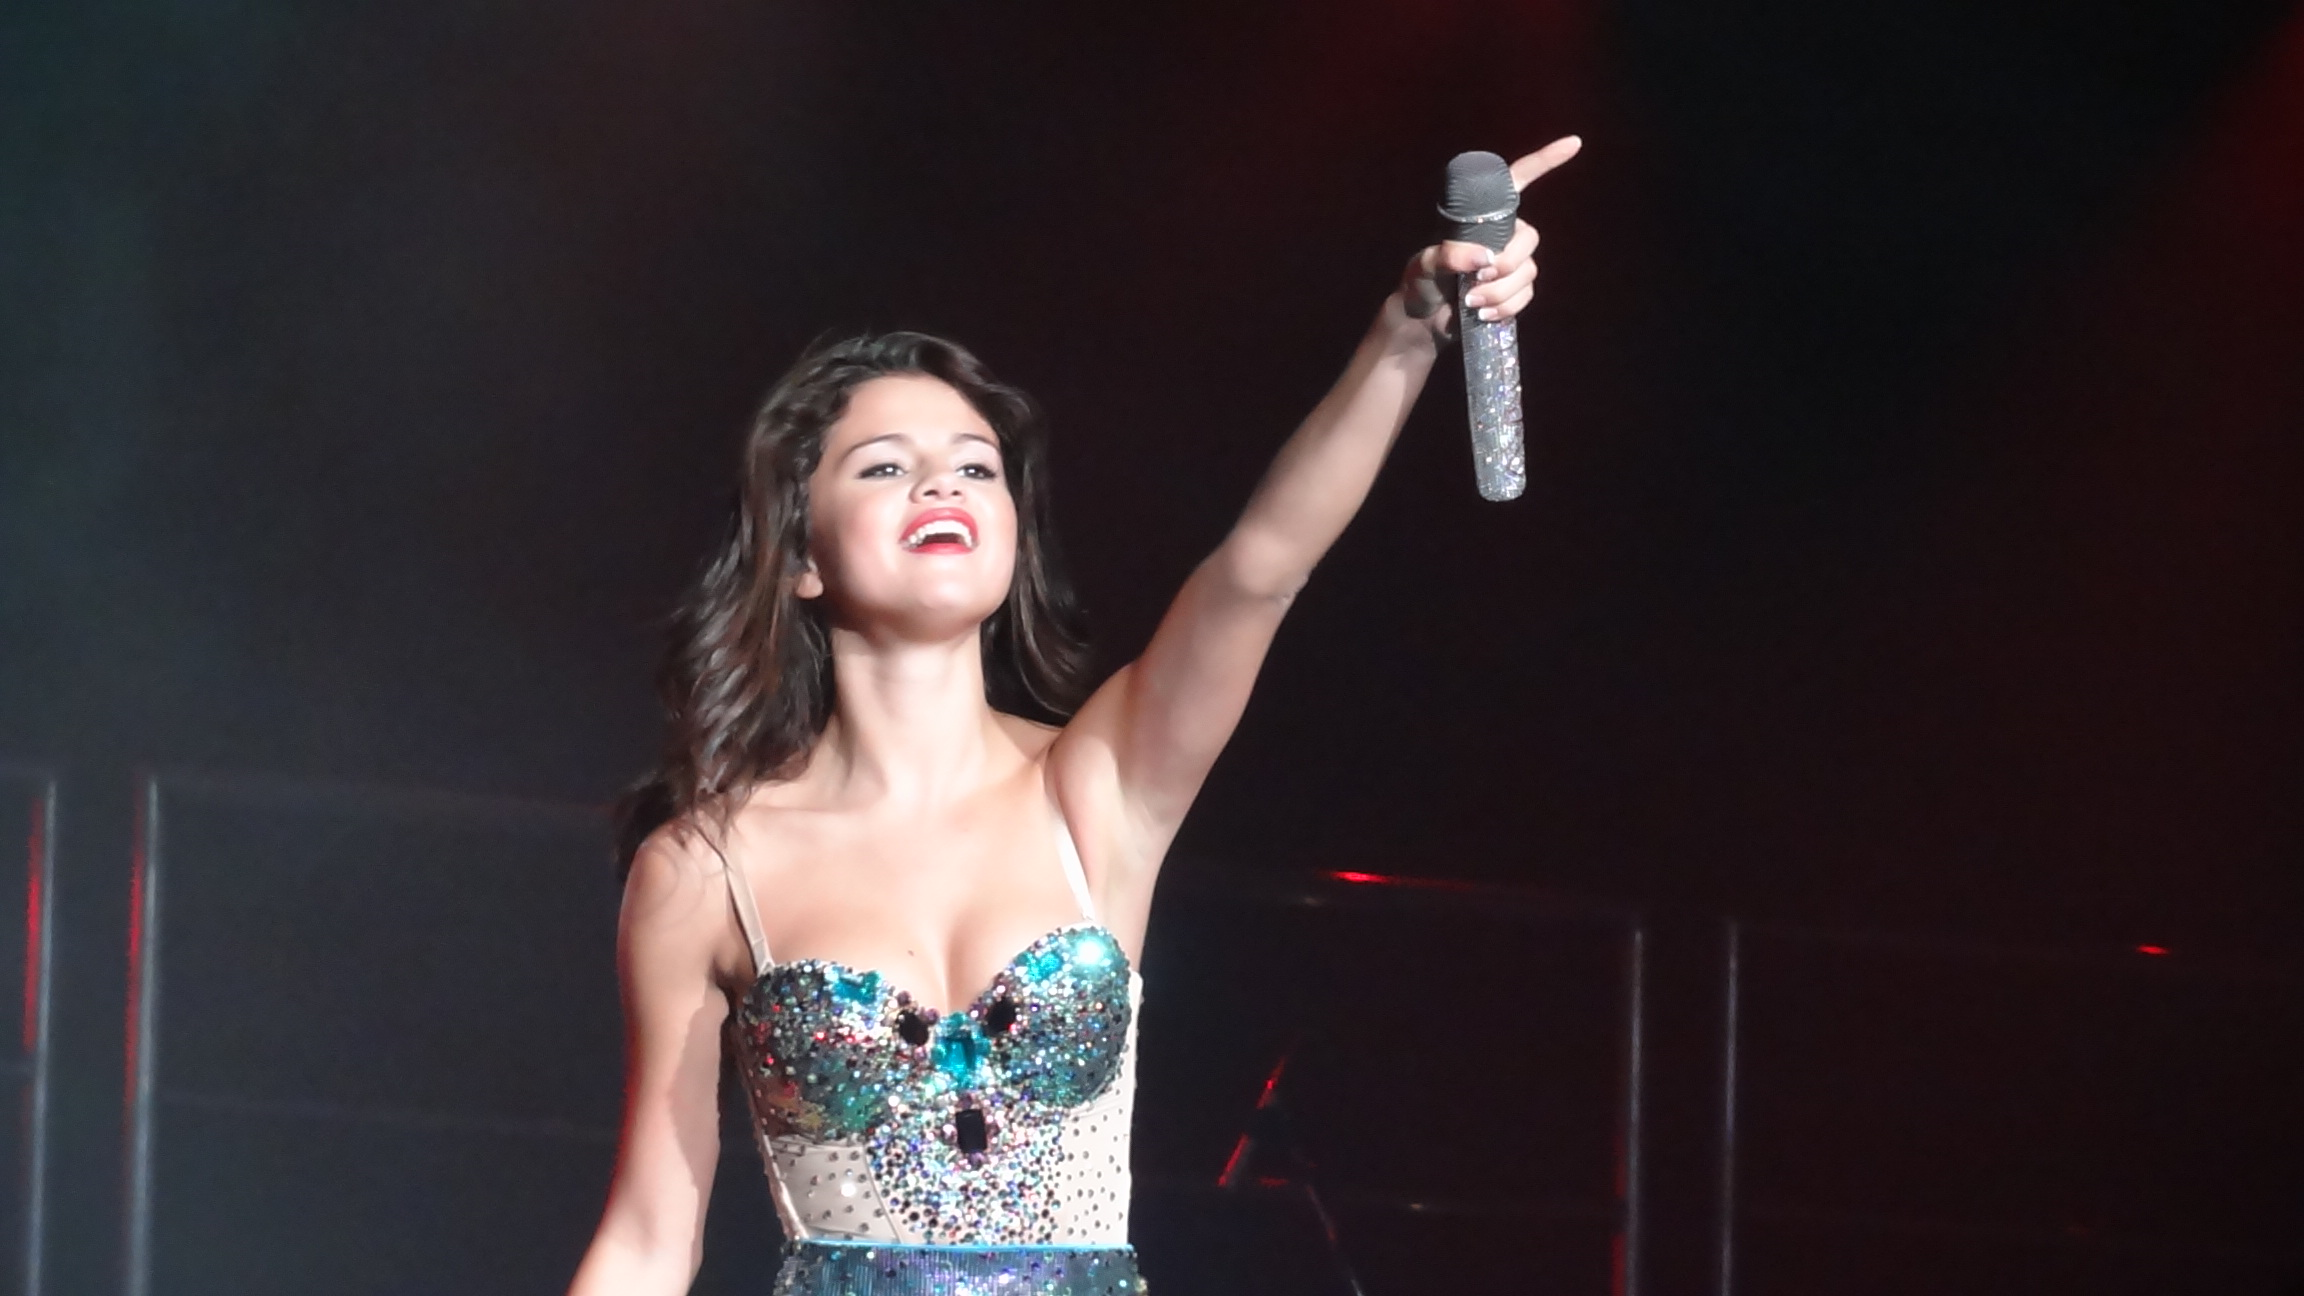 does selena gomez write her own songs Michaels contributed her writing chops to gomez's chart-climbing bad liar, a minimal, talking heads-lifting track in the vein of her own single issues it's not the first time they've joined forces in the studio -- michaels co-wrote six songs off gomez's revival, including good for you and hands to myself, alongside songwriting veteran.